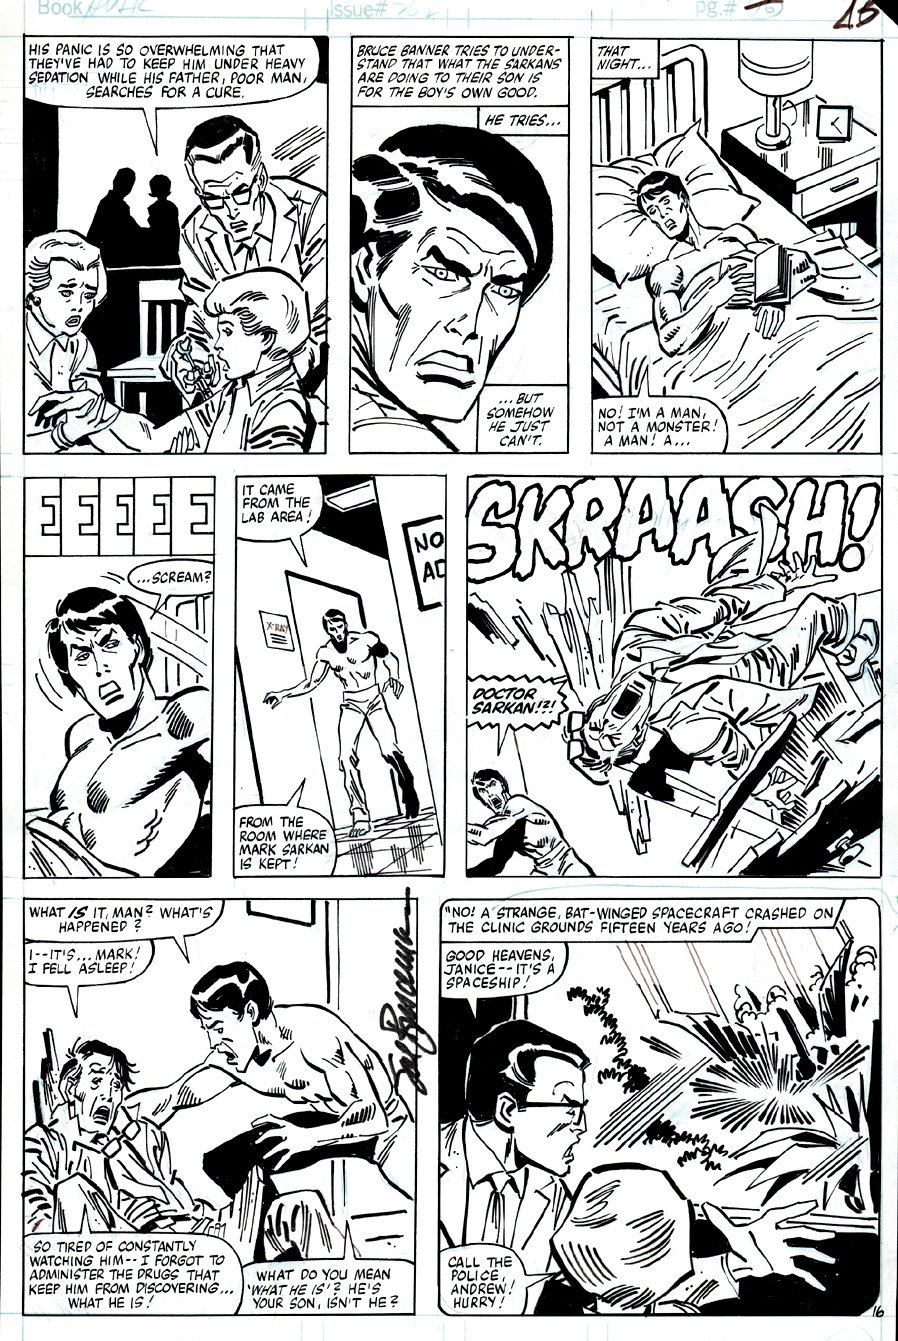 Incredible Hulk #262 p 16 (BRUCE BANNER MEETS THE BOY WHO IS A DIRE WRAITH MONSTER!) 1981